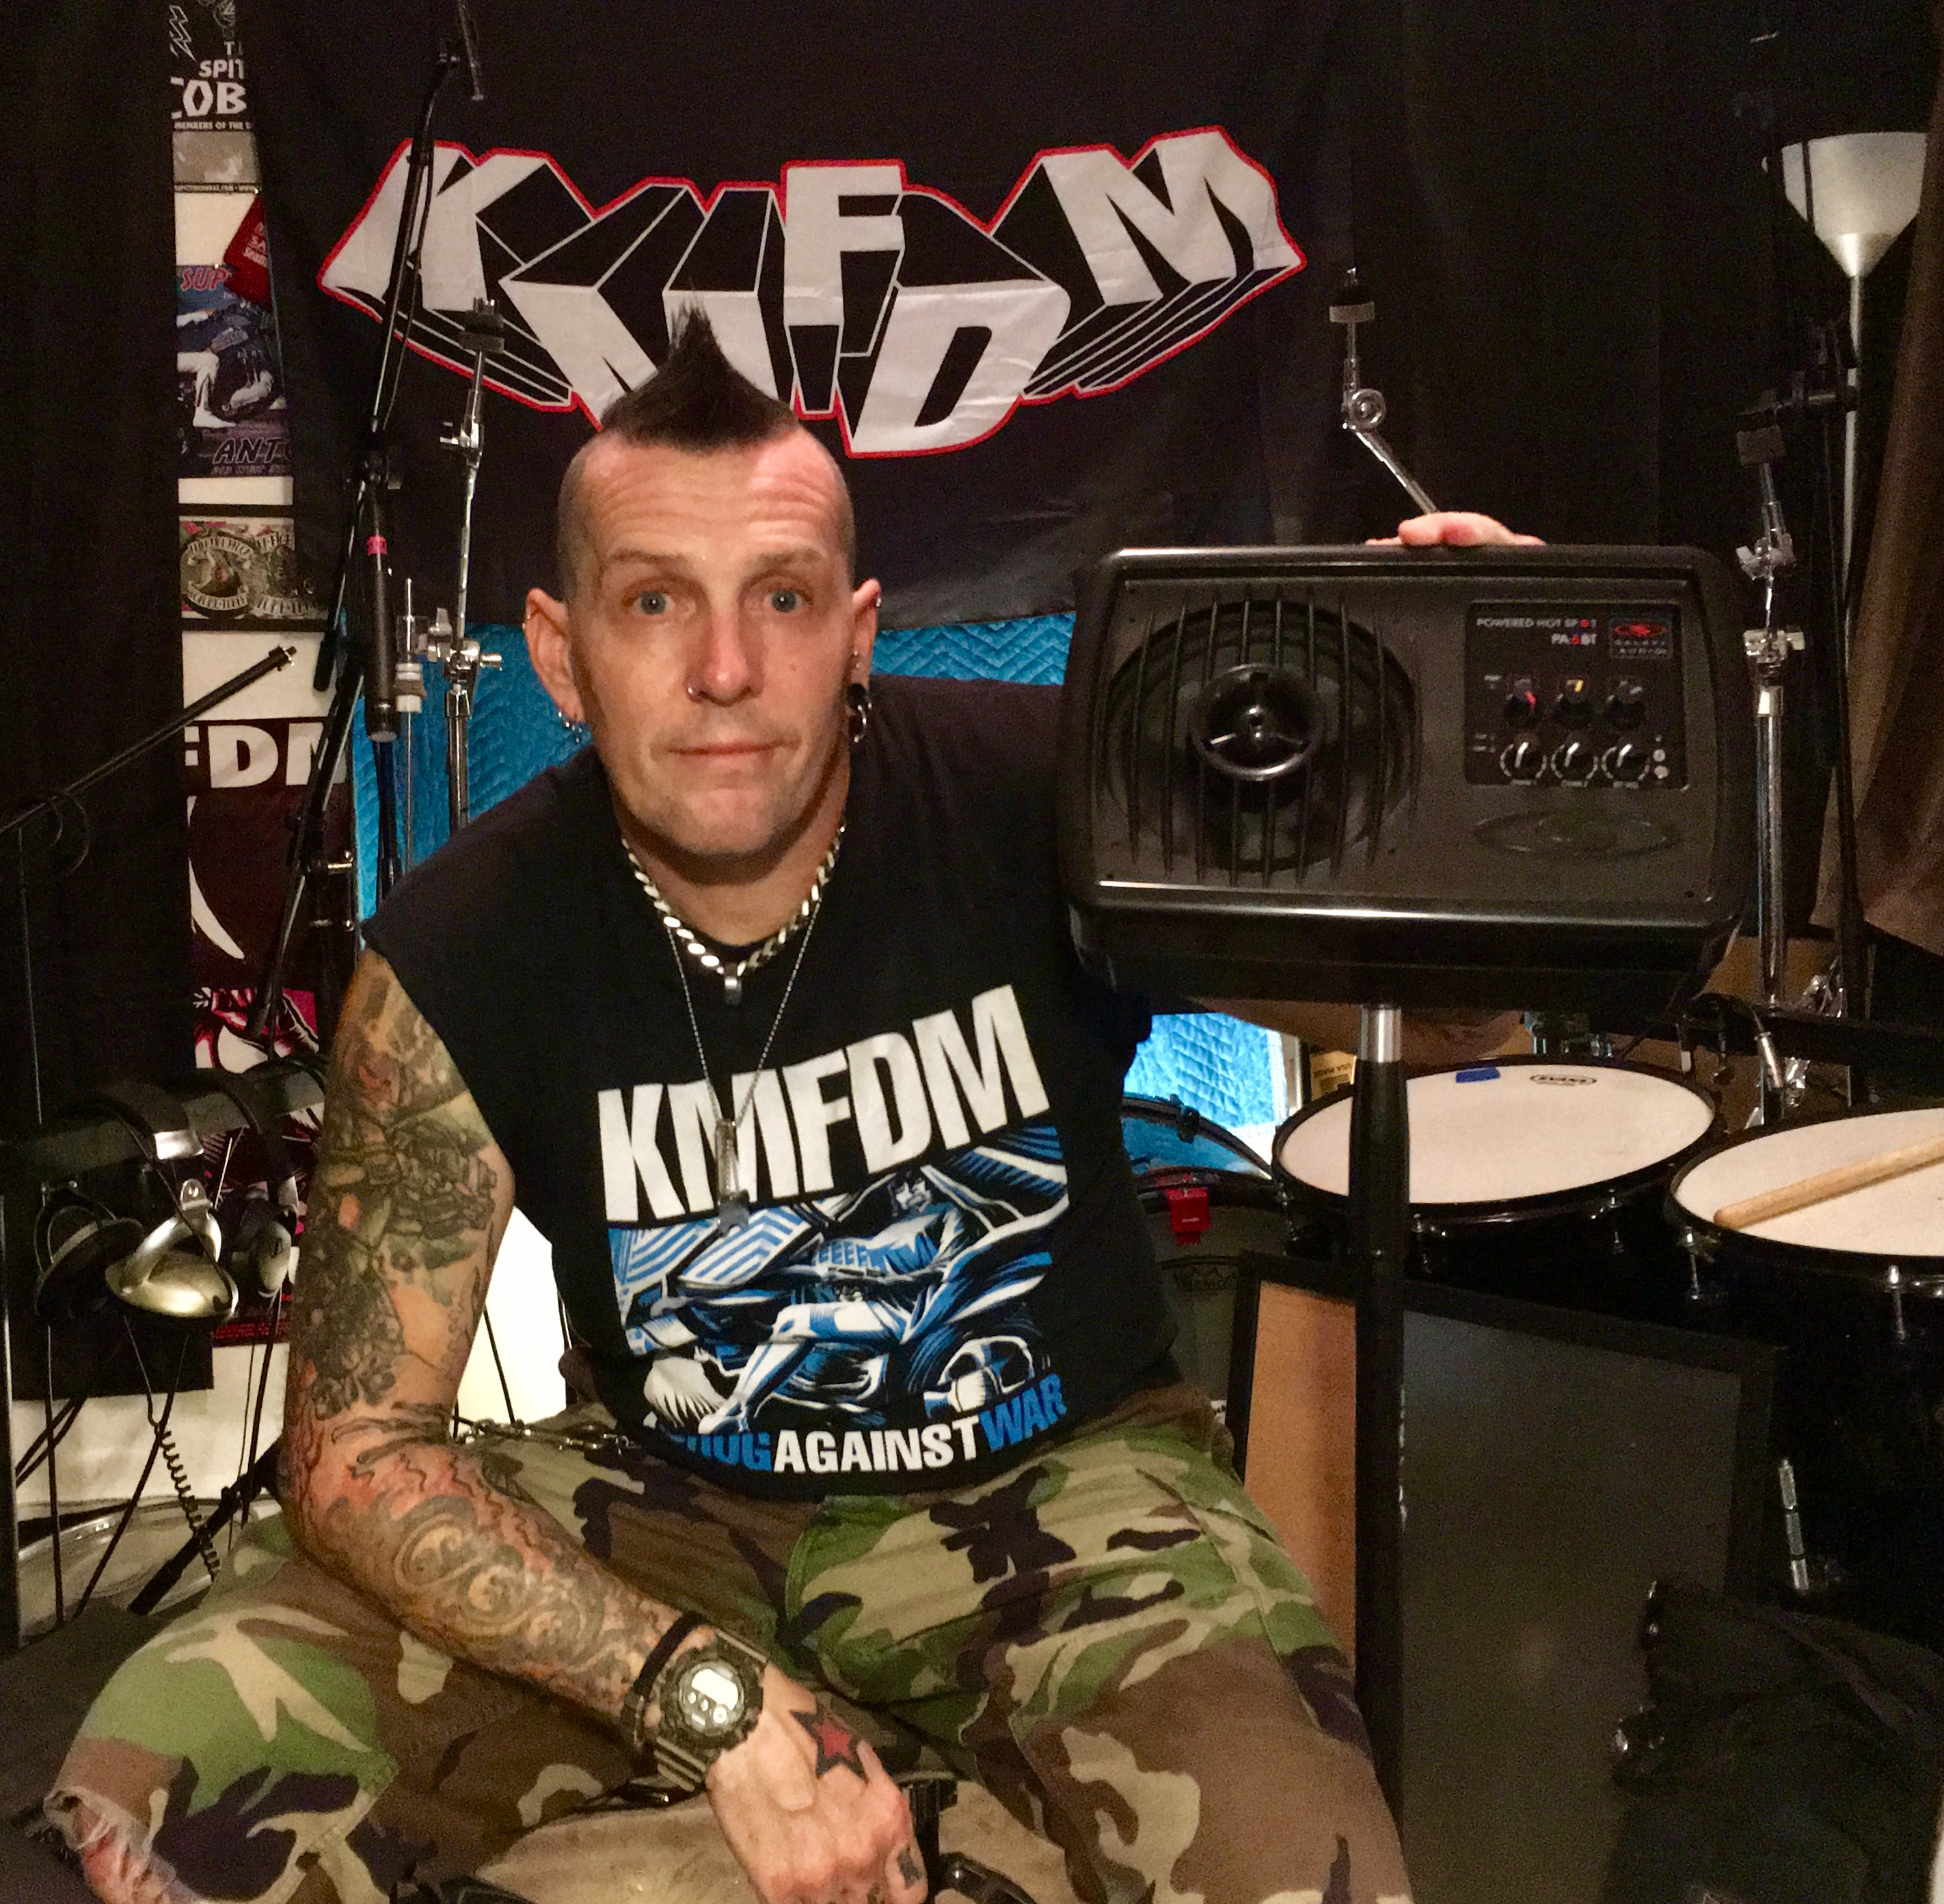 Andy Selway of KMFDM is loving his Galaxy gear!